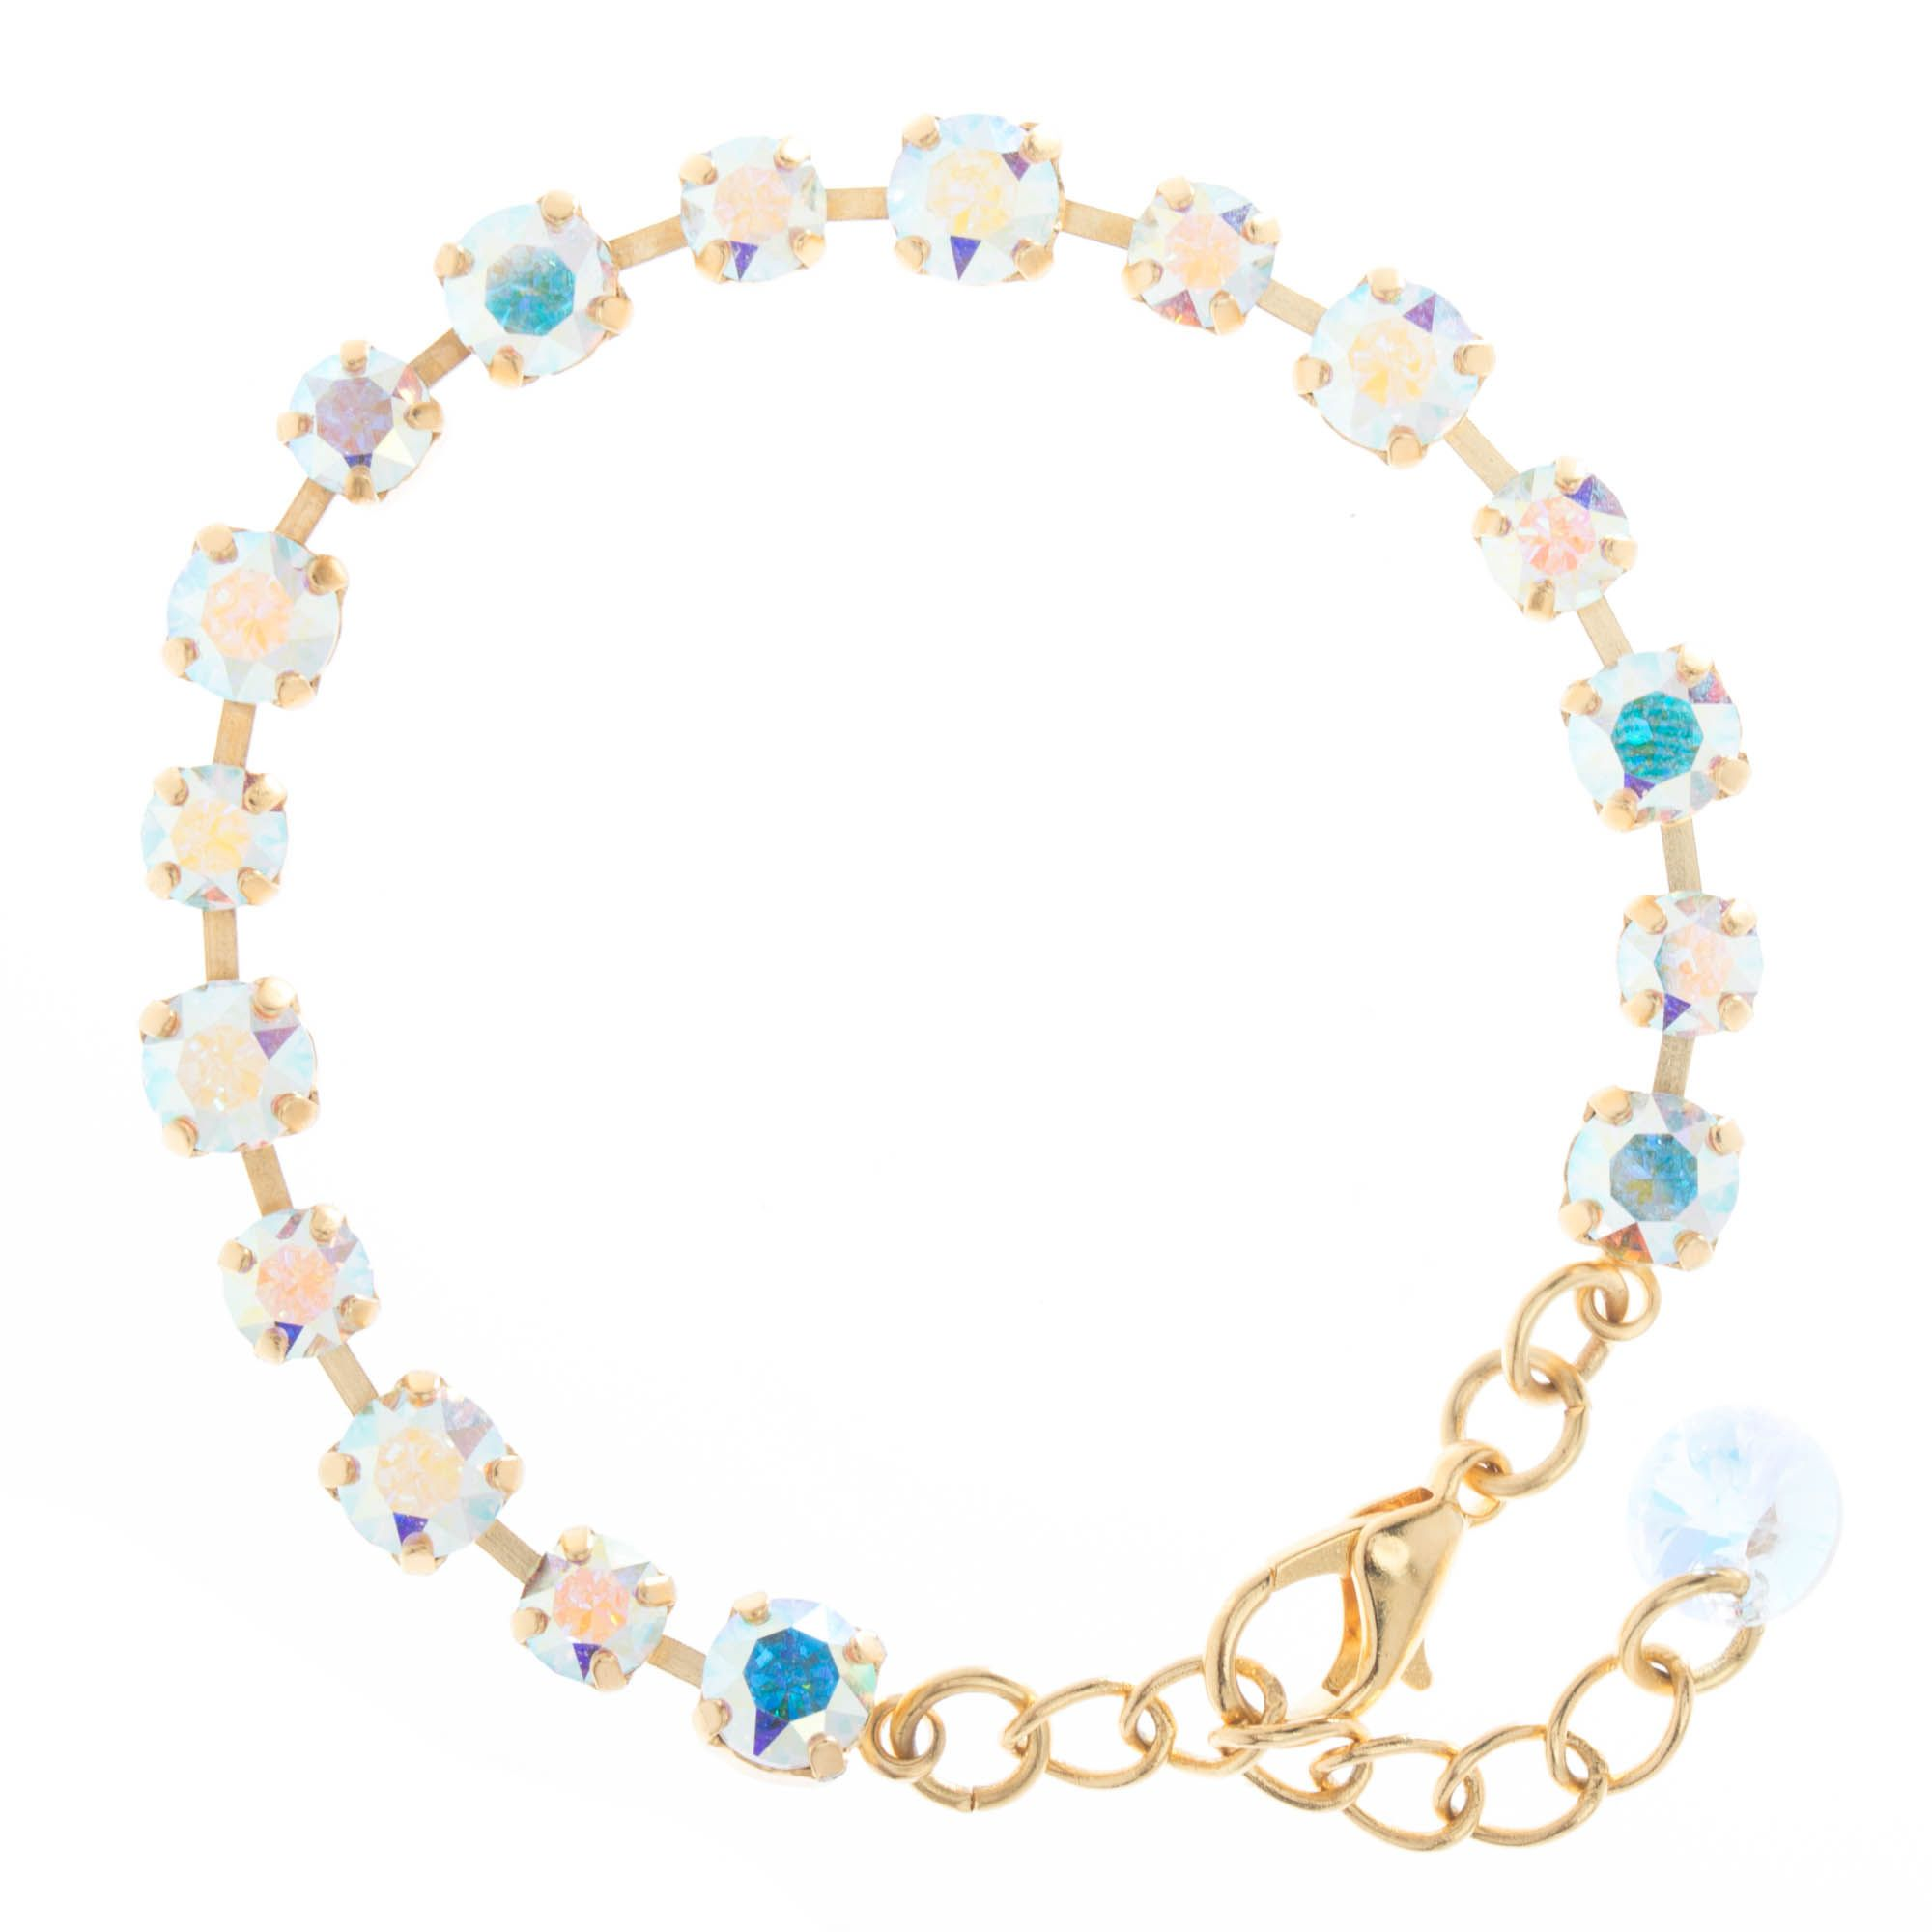 cd98674d9e2f5 Petite! YPMCO 6mm & 4mm Swarovski Crystal Bracelet - Clear or AB